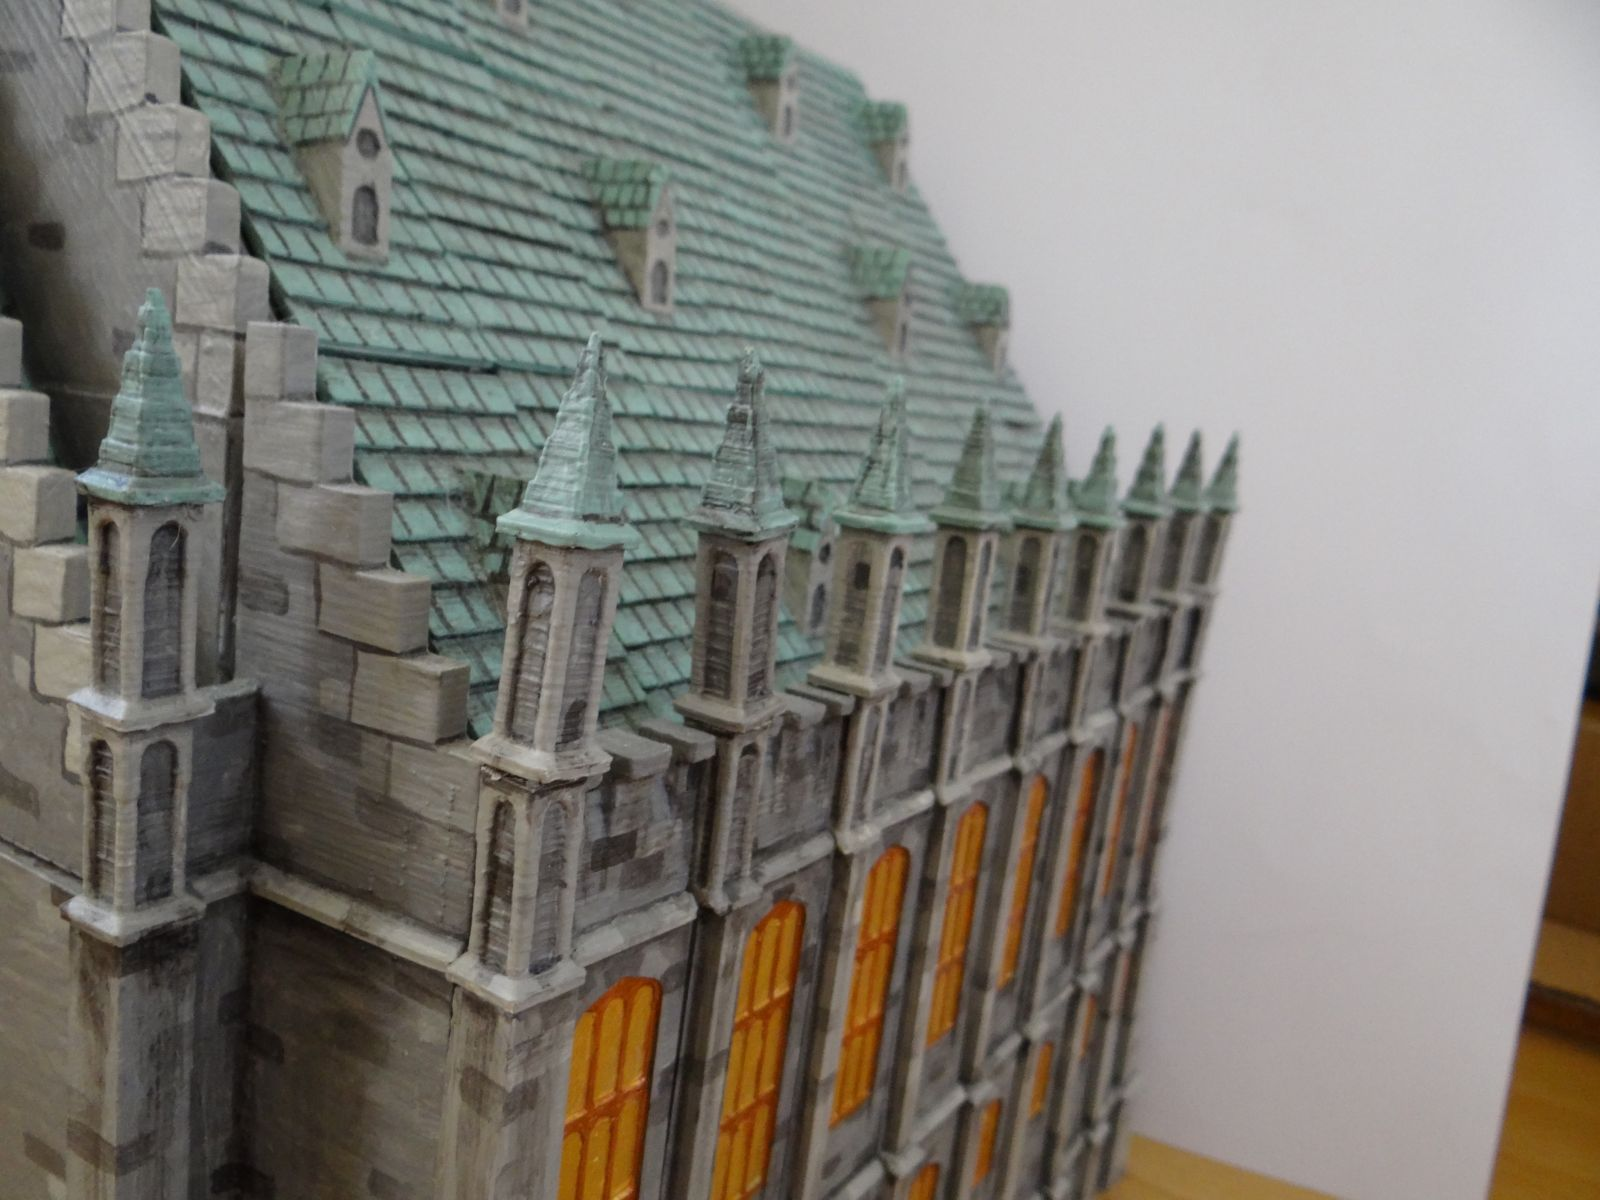 Hogwarts close-up